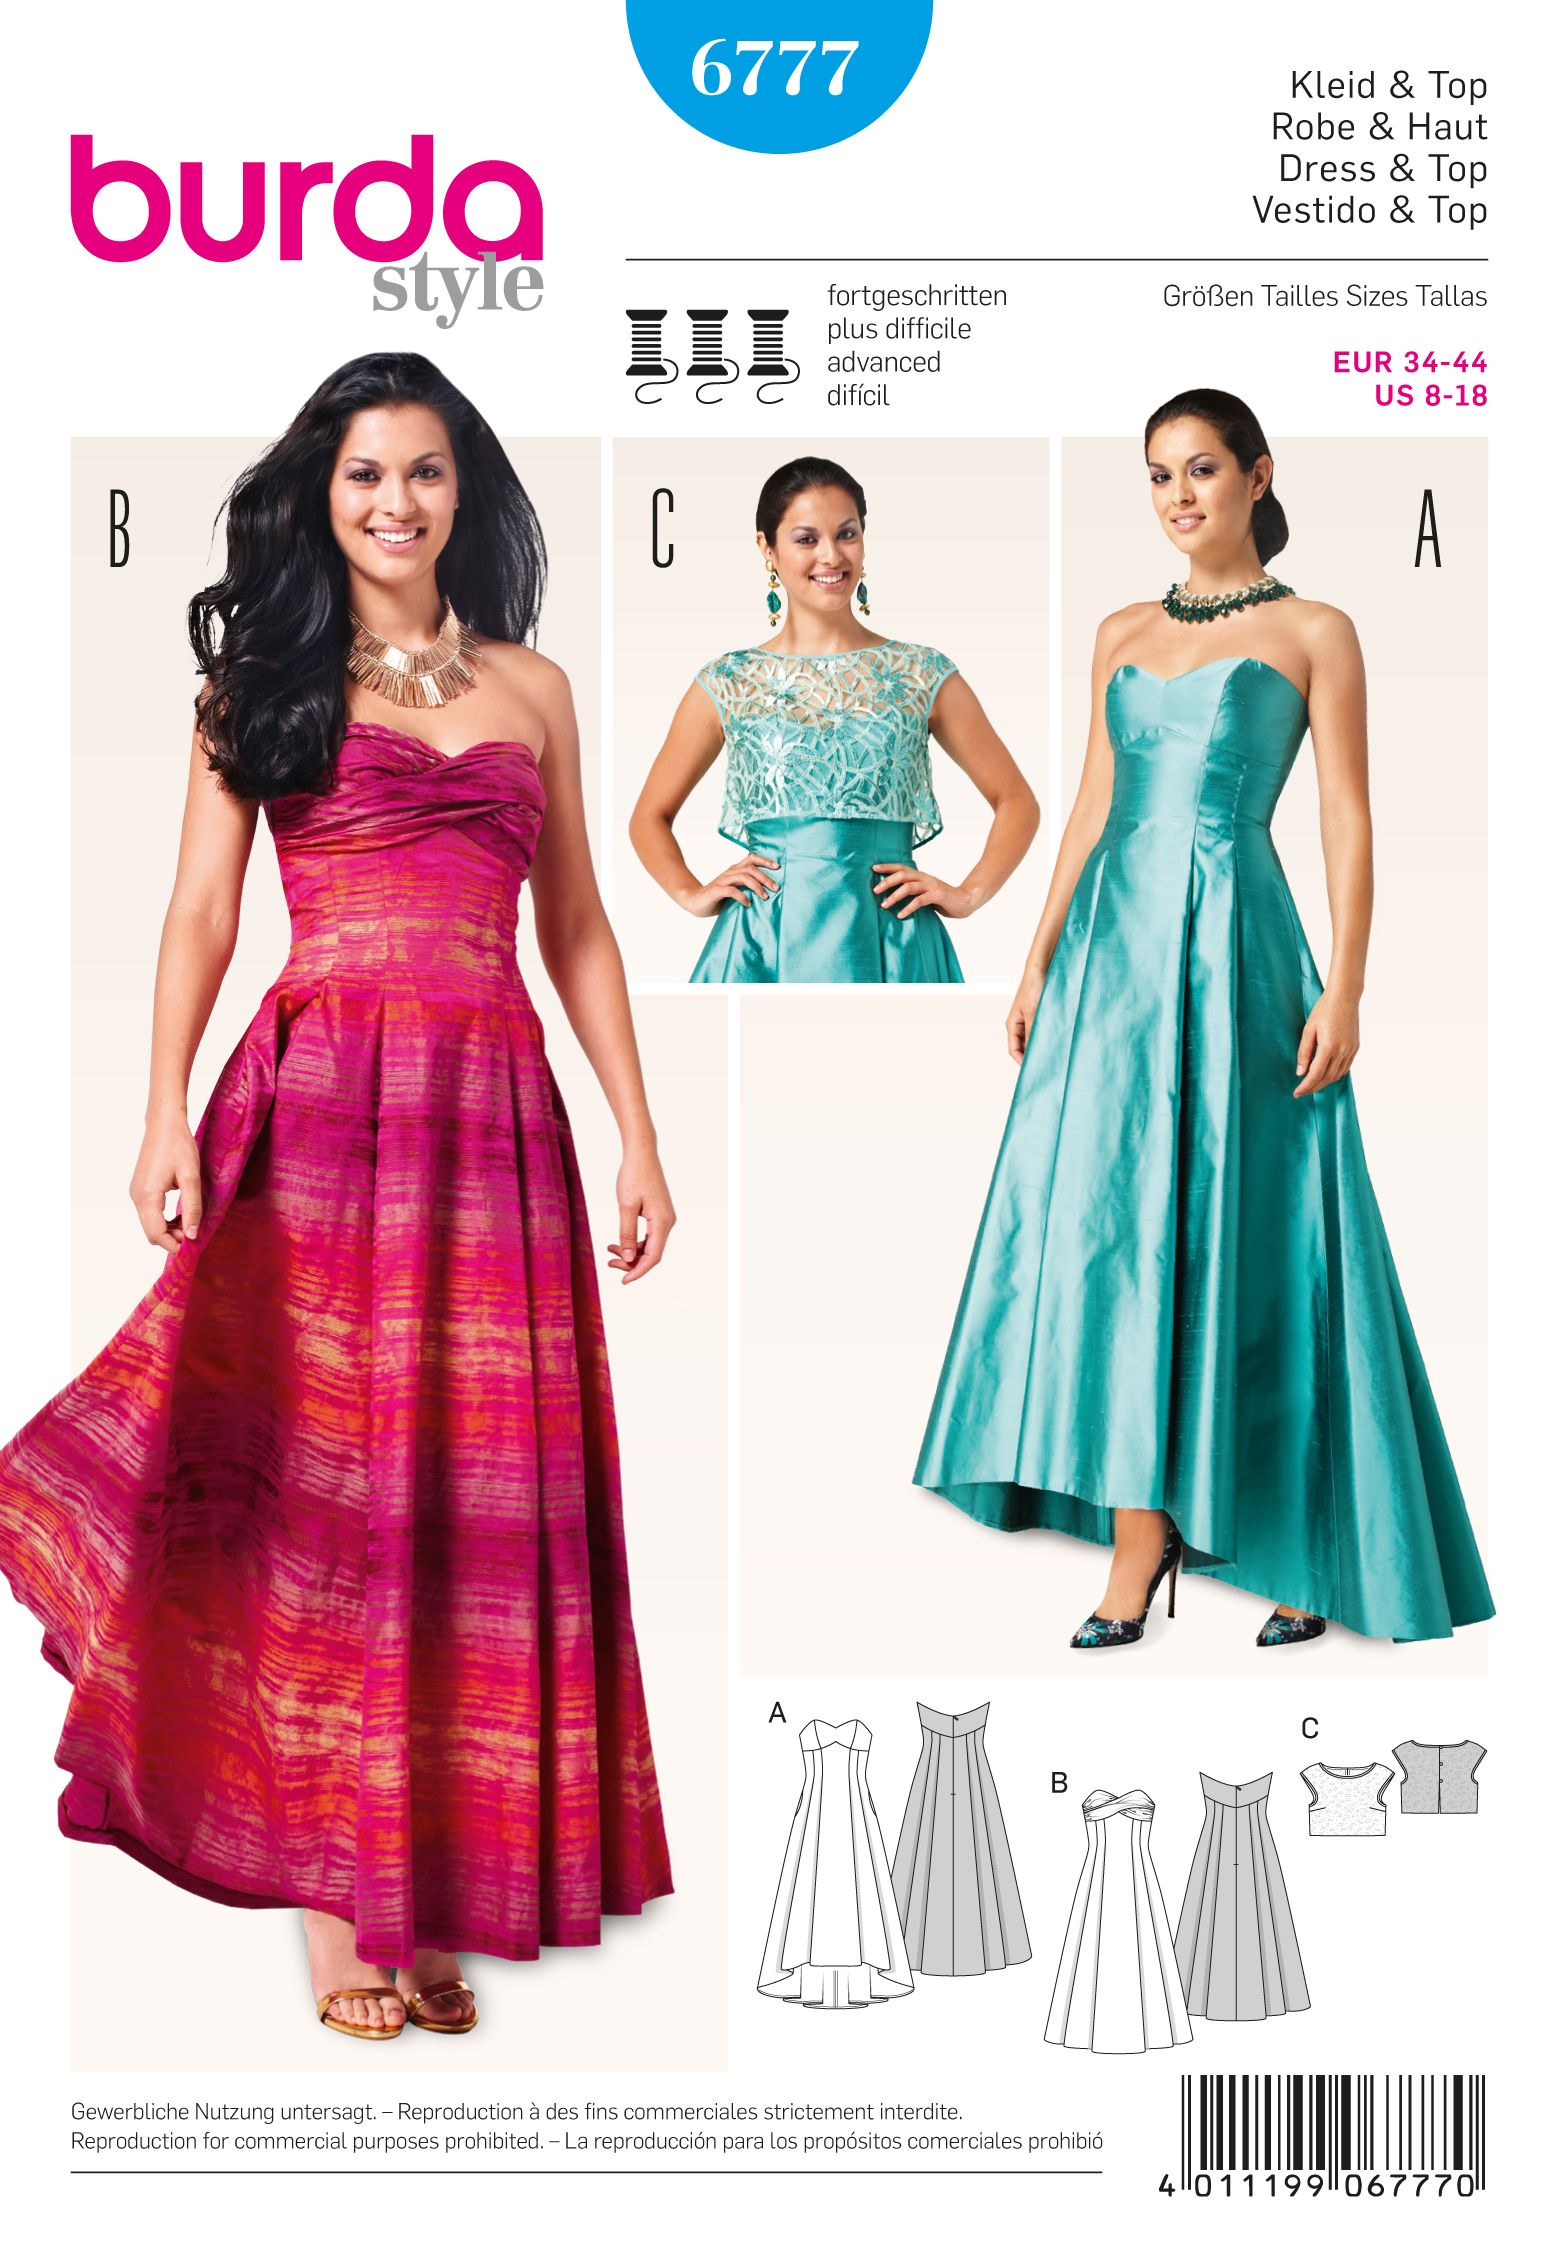 Burda Burda Style Dresses 6777 | Pattern ideas | Pinterest